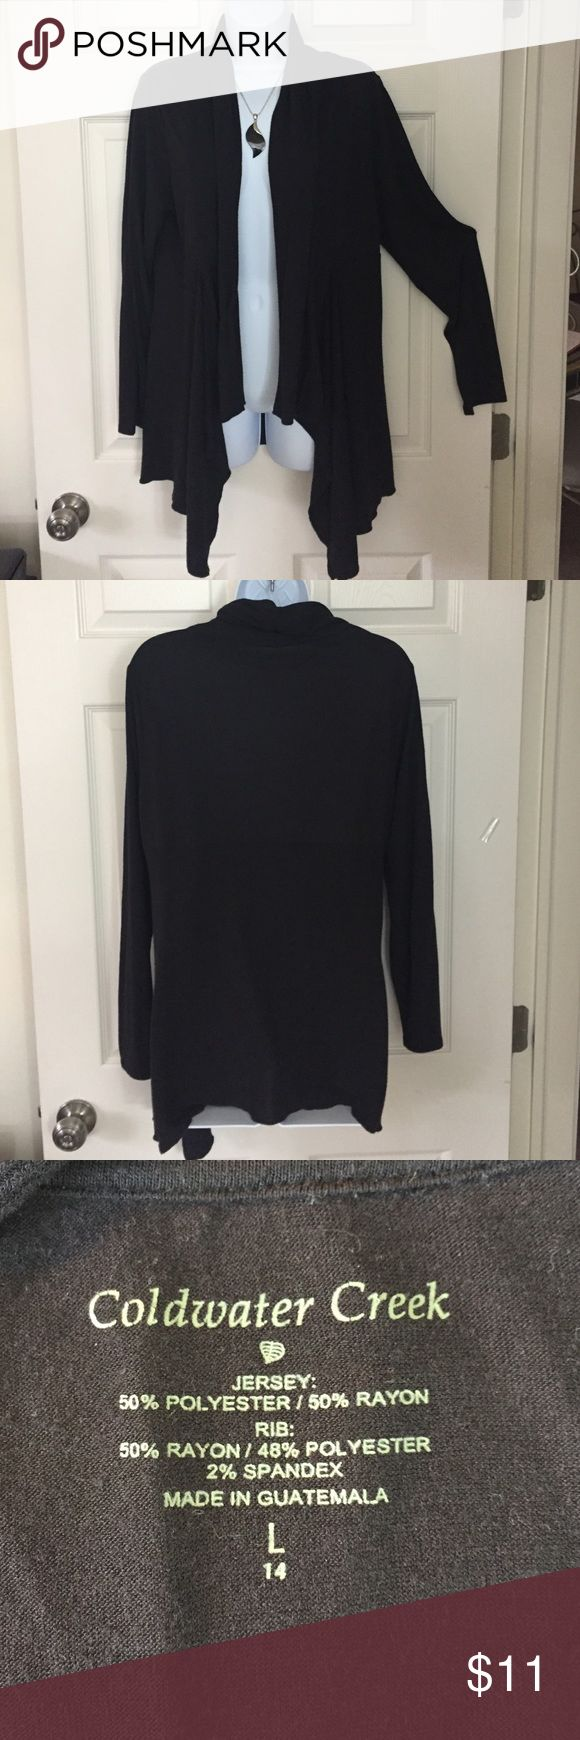 Coldwater Creek cardigan Black light weight cardigan.  Wonderful draping in front. Coldwater Creek Sweaters